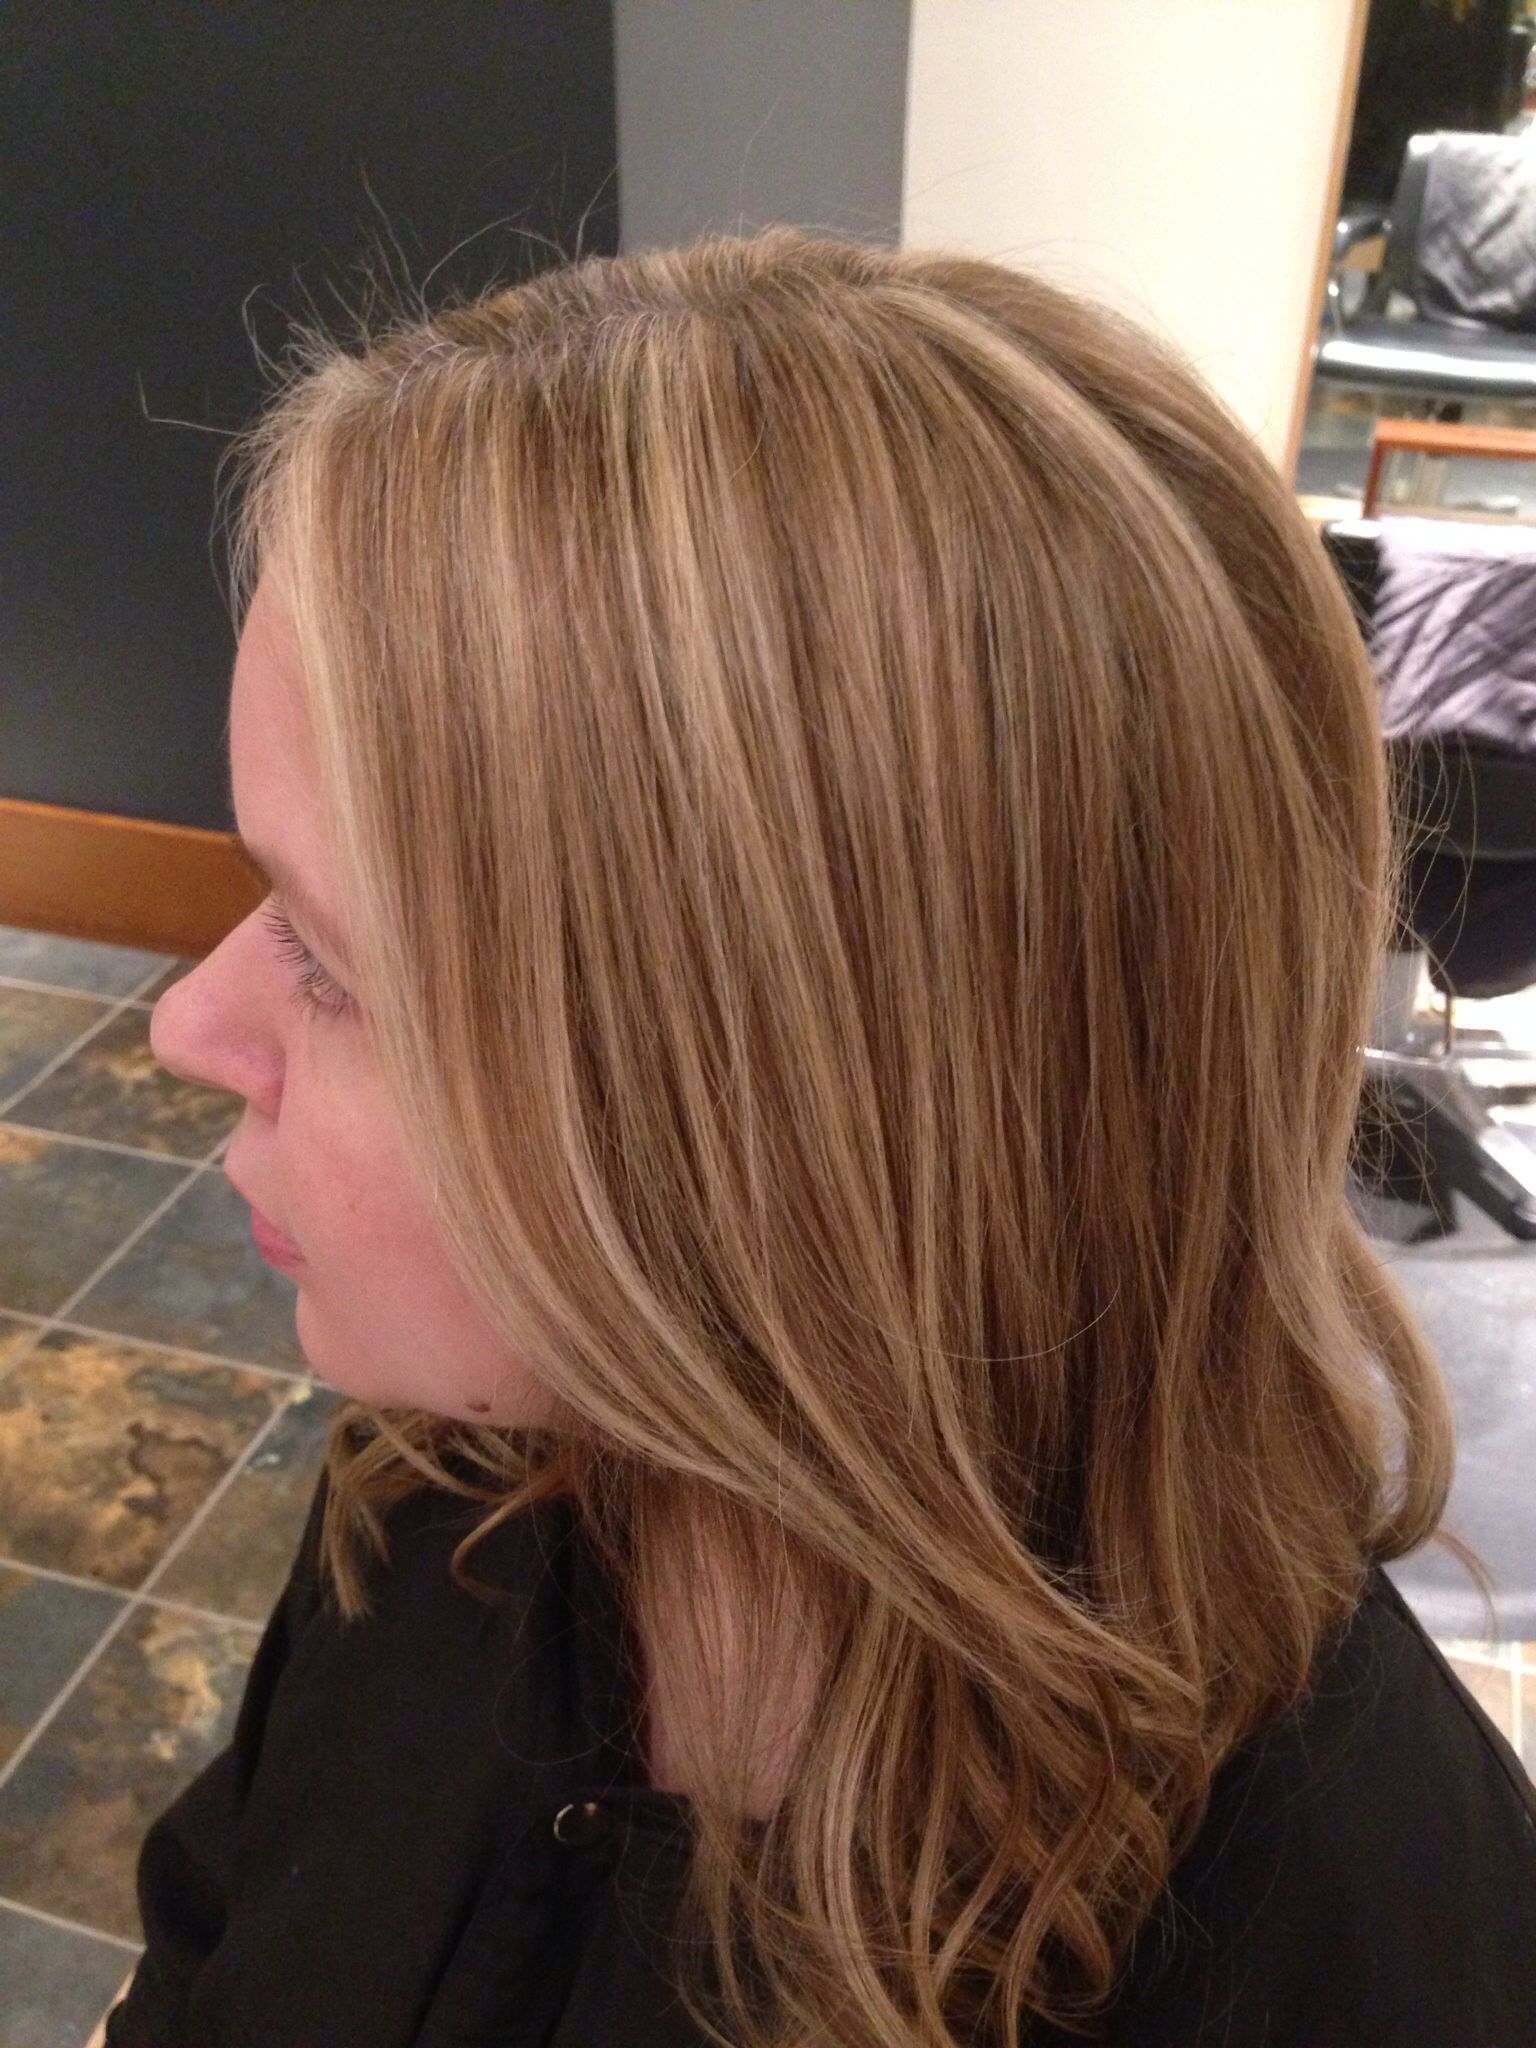 Balayage with wella 7/73 lowlights | My hair color ...